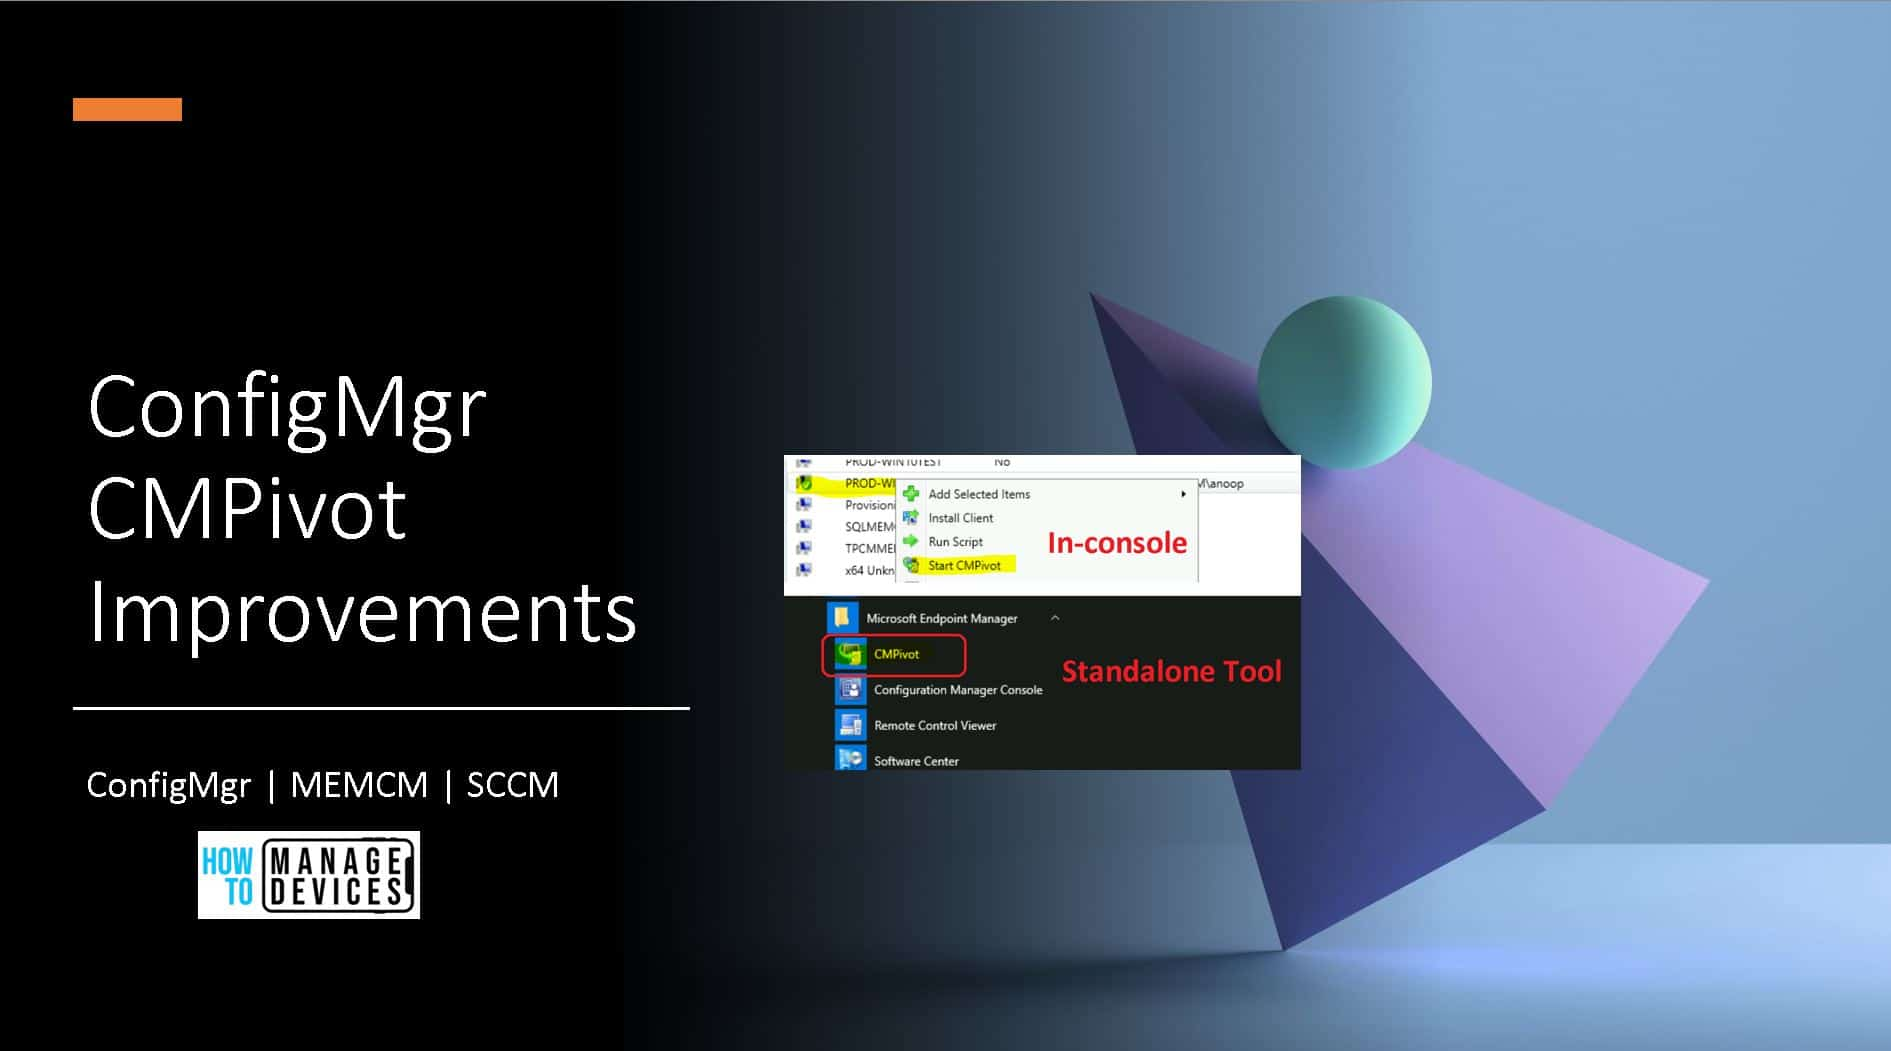 SCCM CMPivot ConfigMgr Improvements